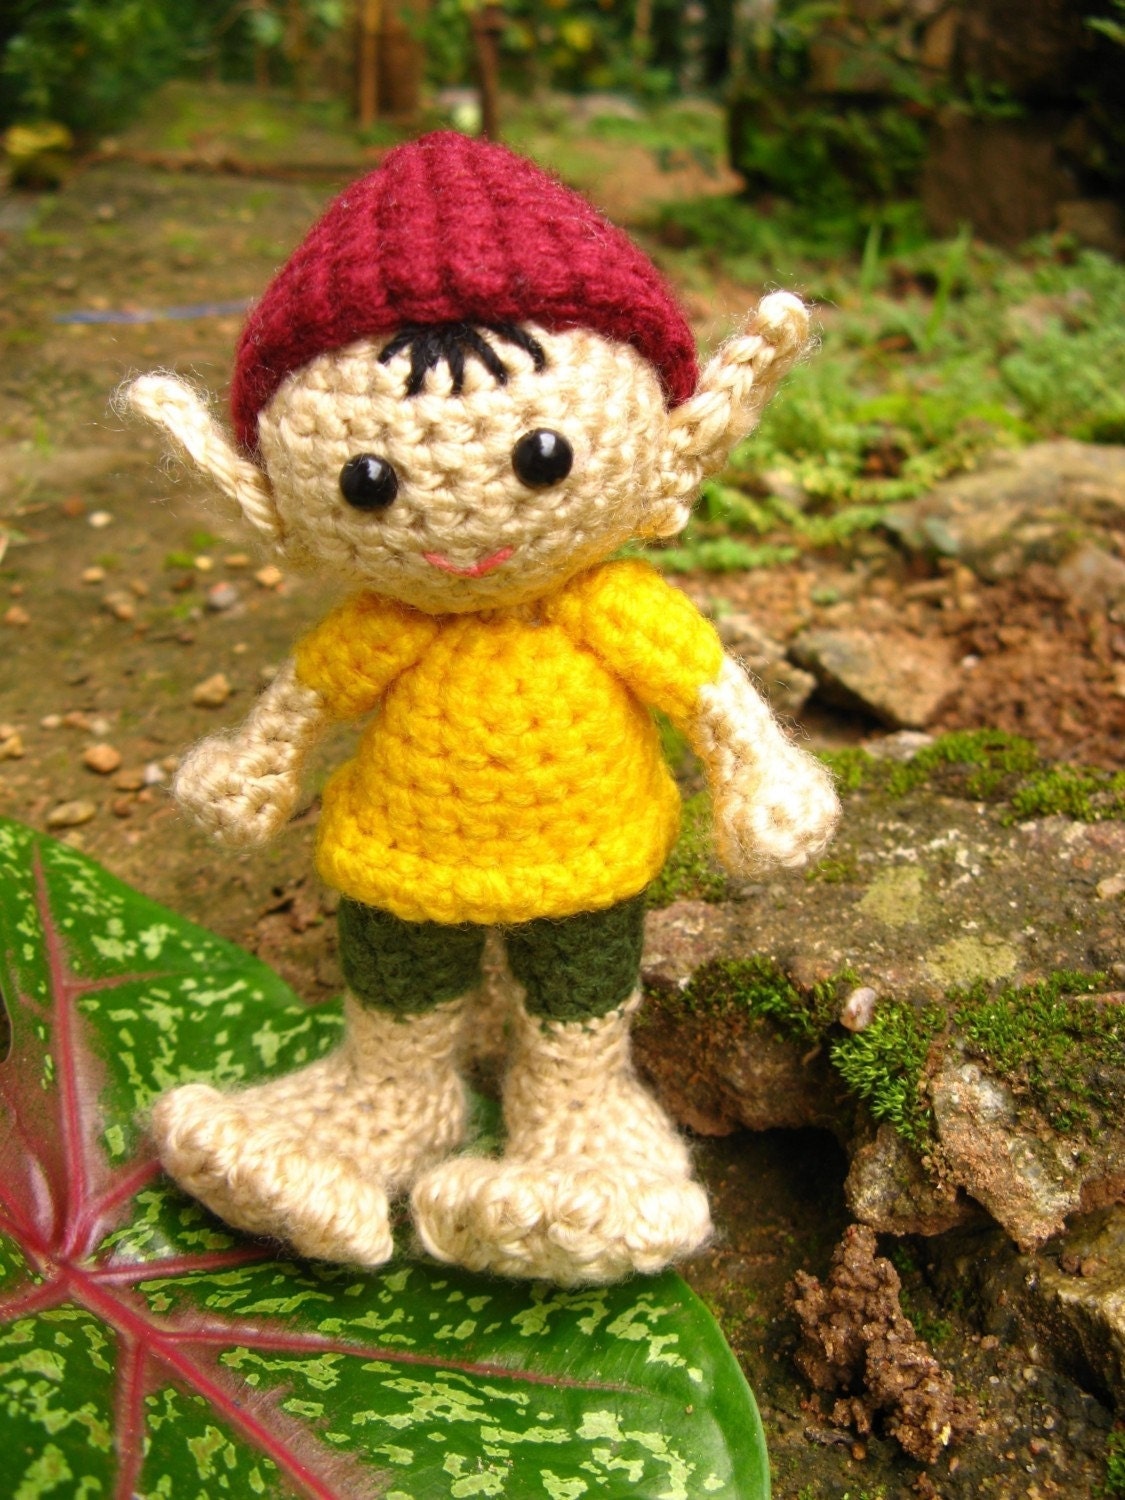 Amigurumi Crochet Pattern PDF - A Little Elf named Big Foot